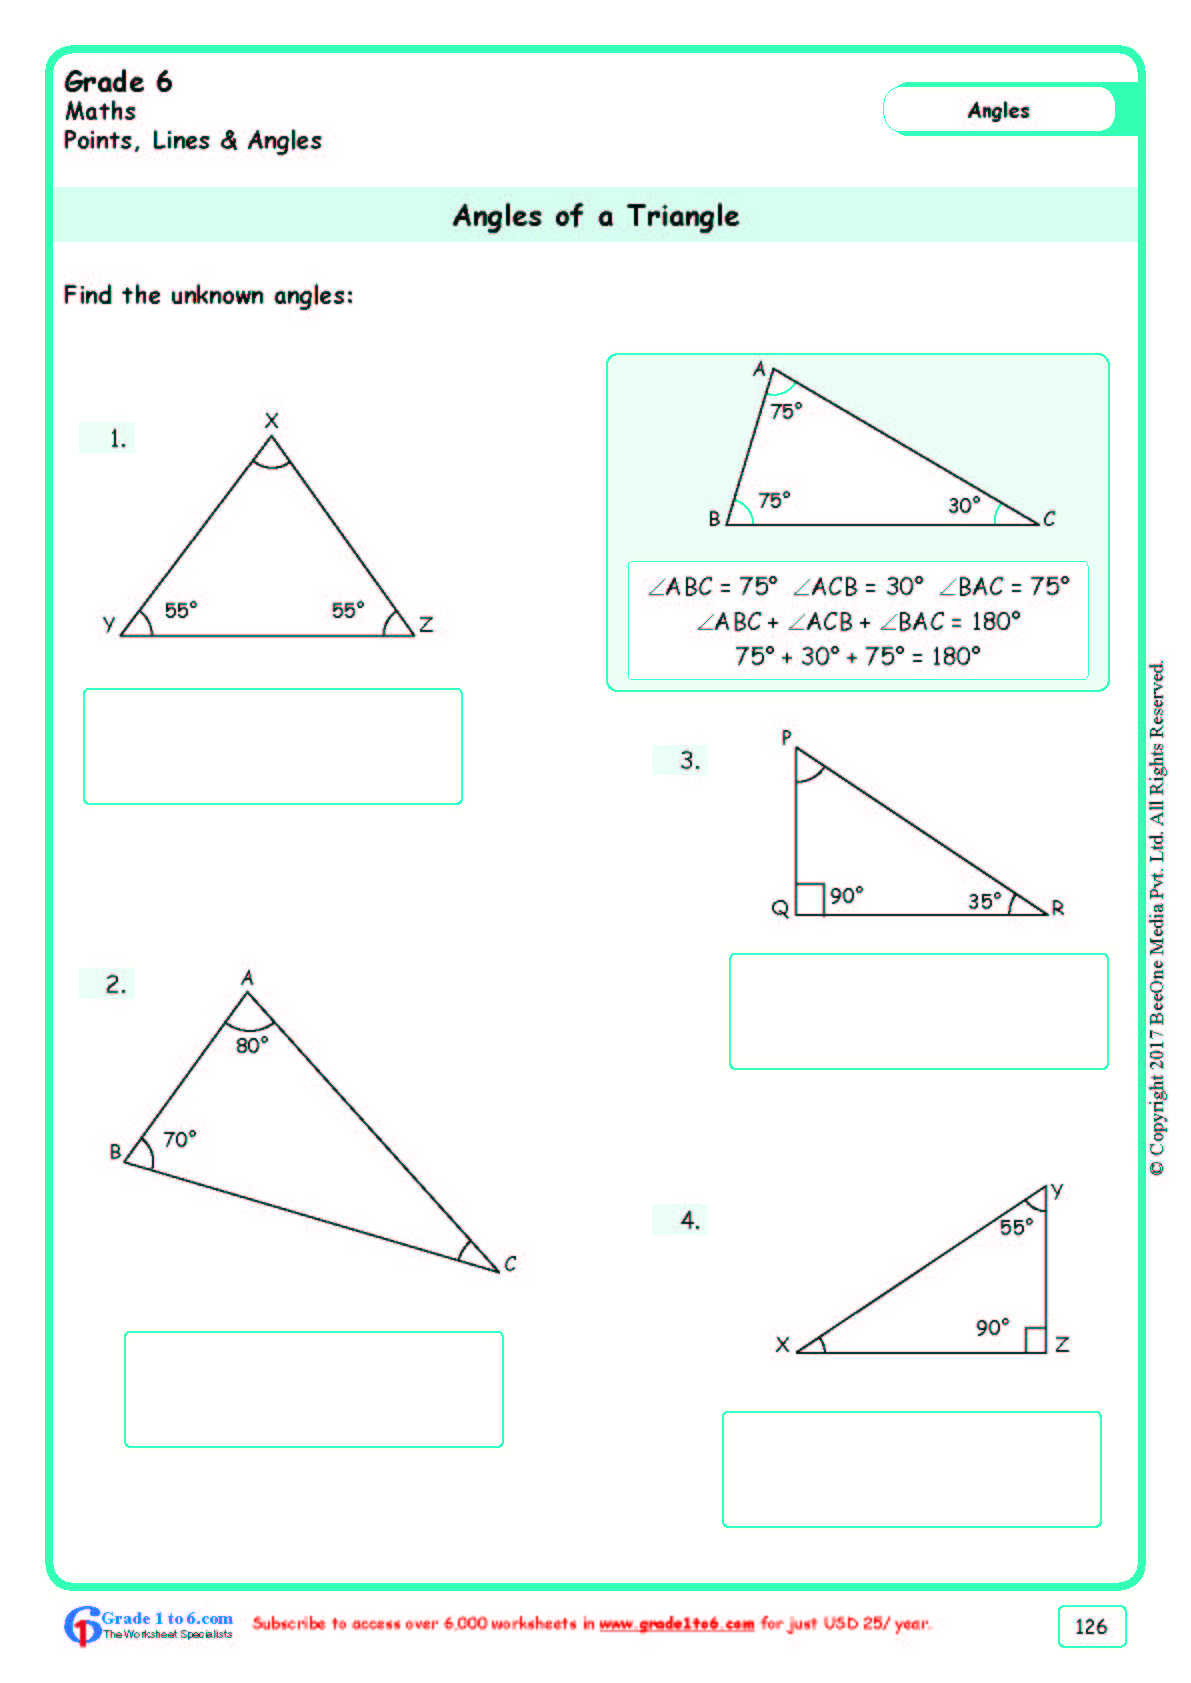 Grade 6 Class Six Angles Of A Triangle Worksheets Www Grade1to6 Com